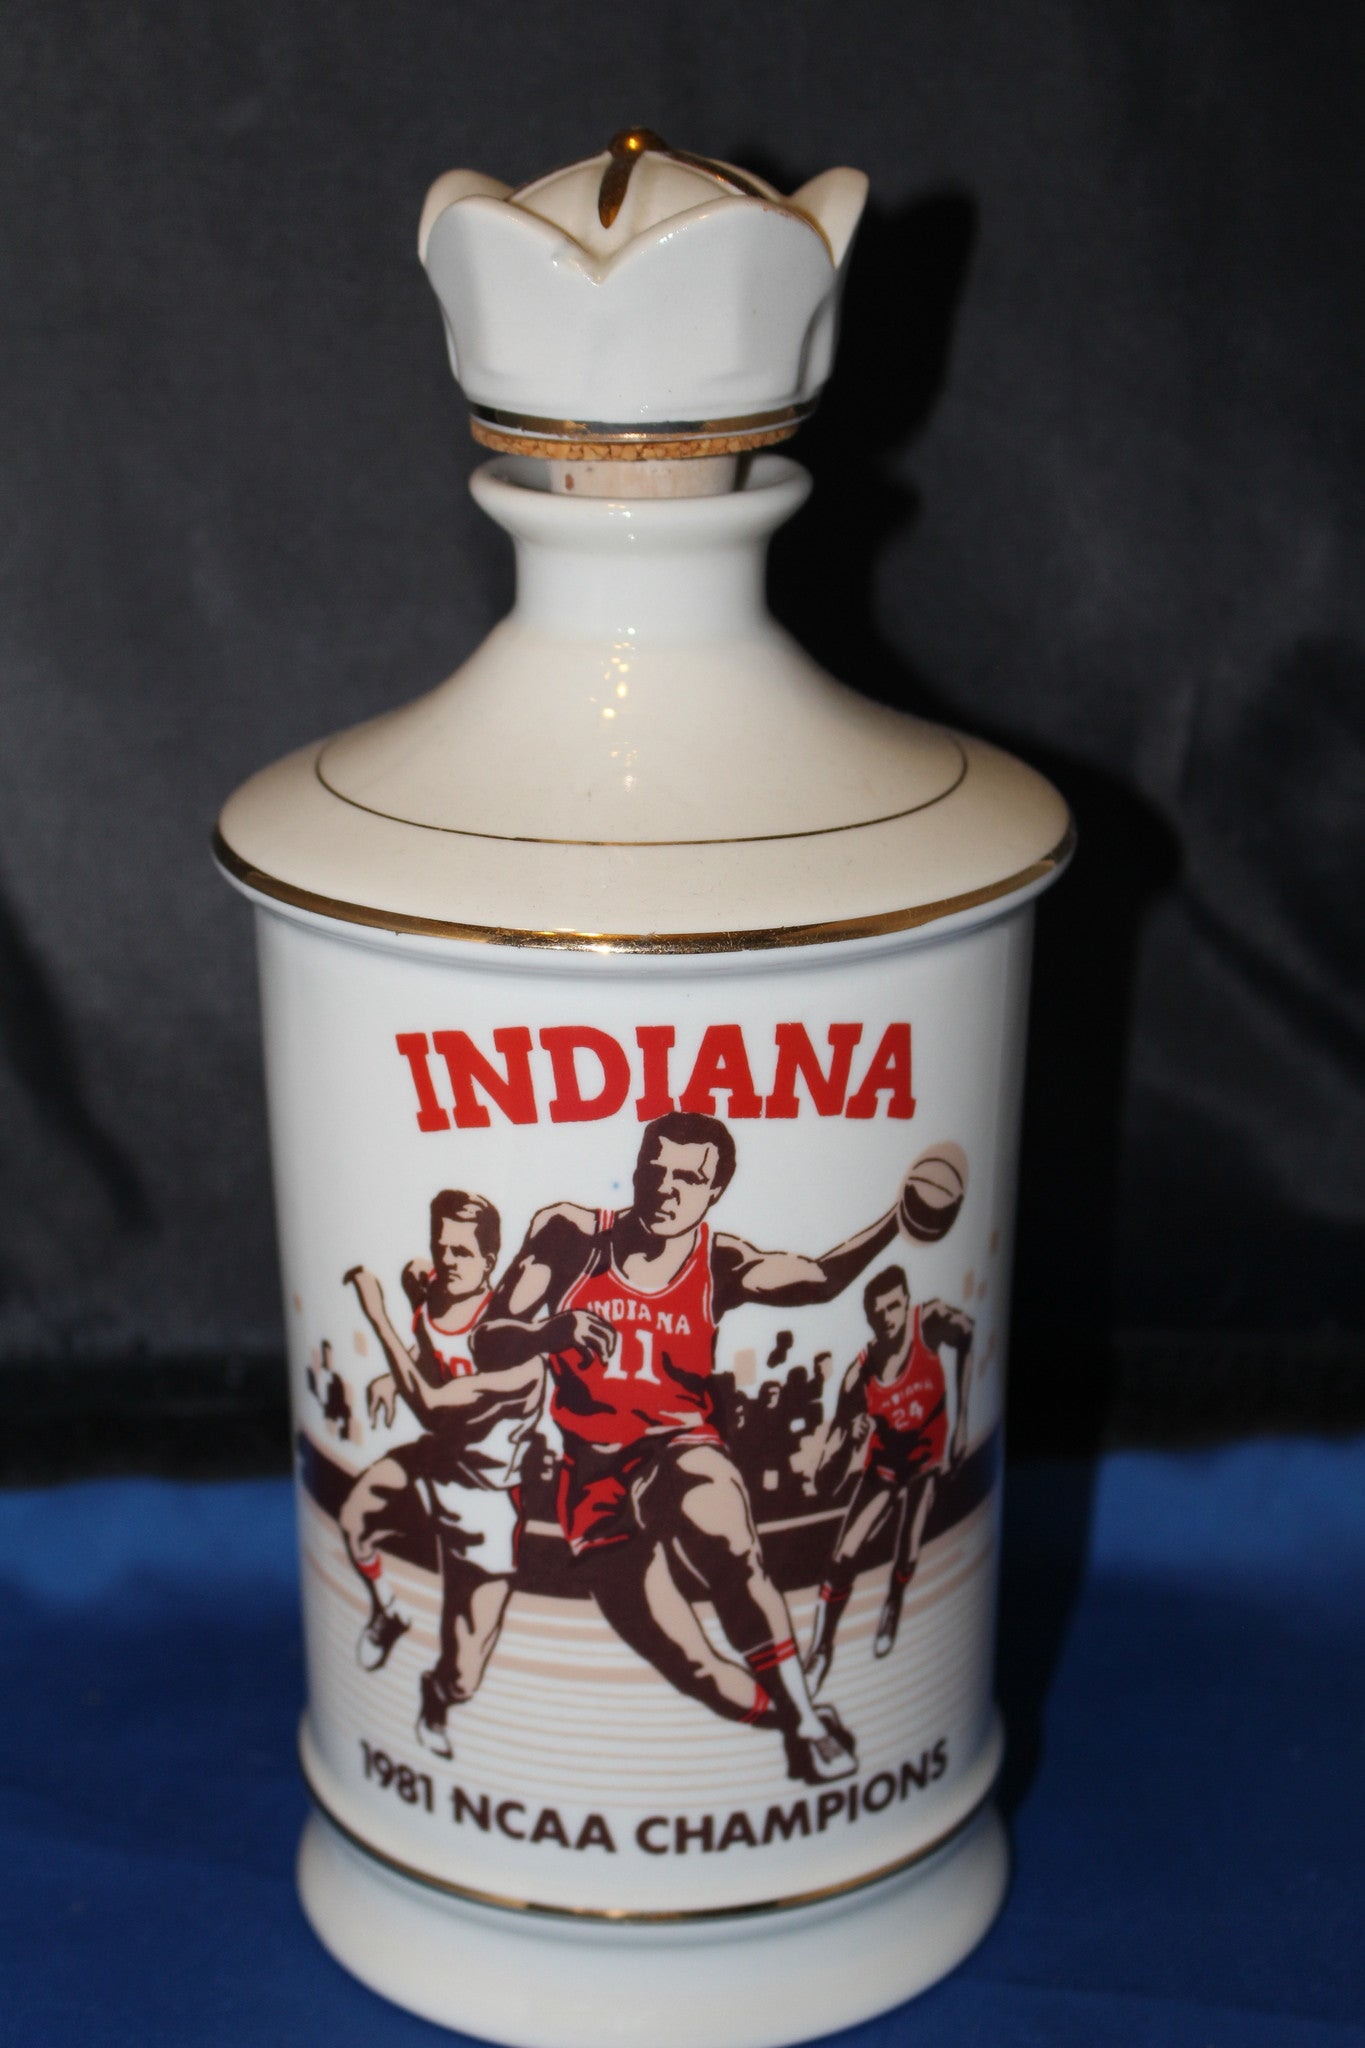 1981 Indiana University NCAA Basketball Champions Decanter - Vintage Indy Sports